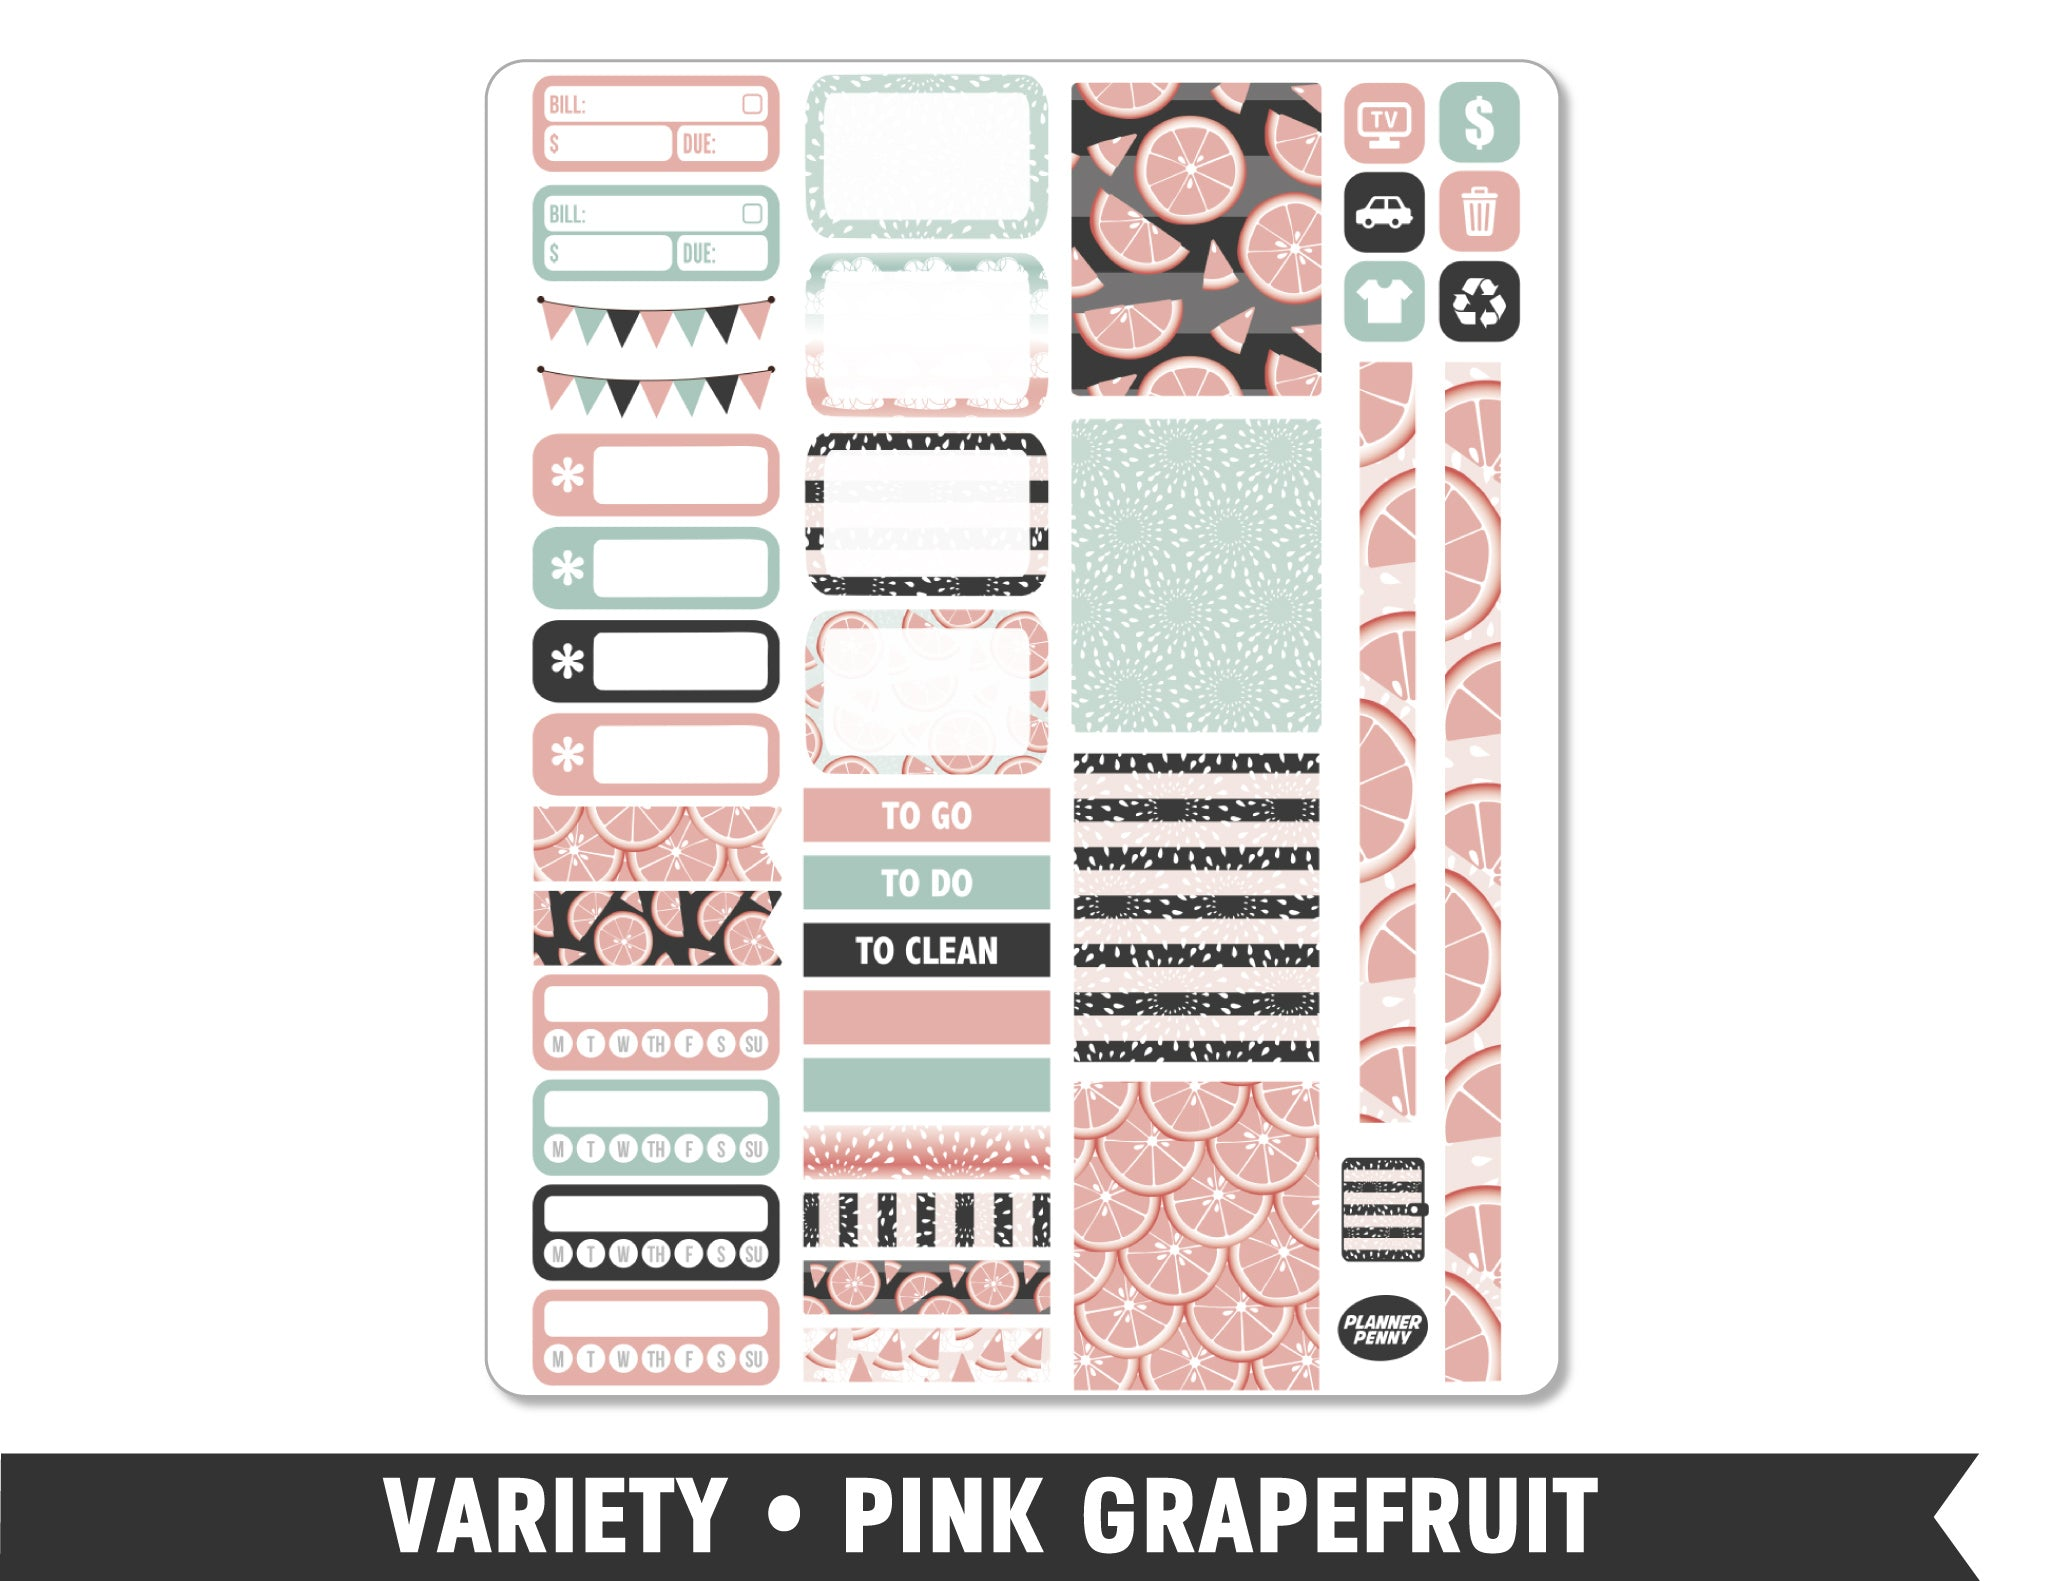 Variety • Pink Grapefruit Weekly Spread Planner Stickers